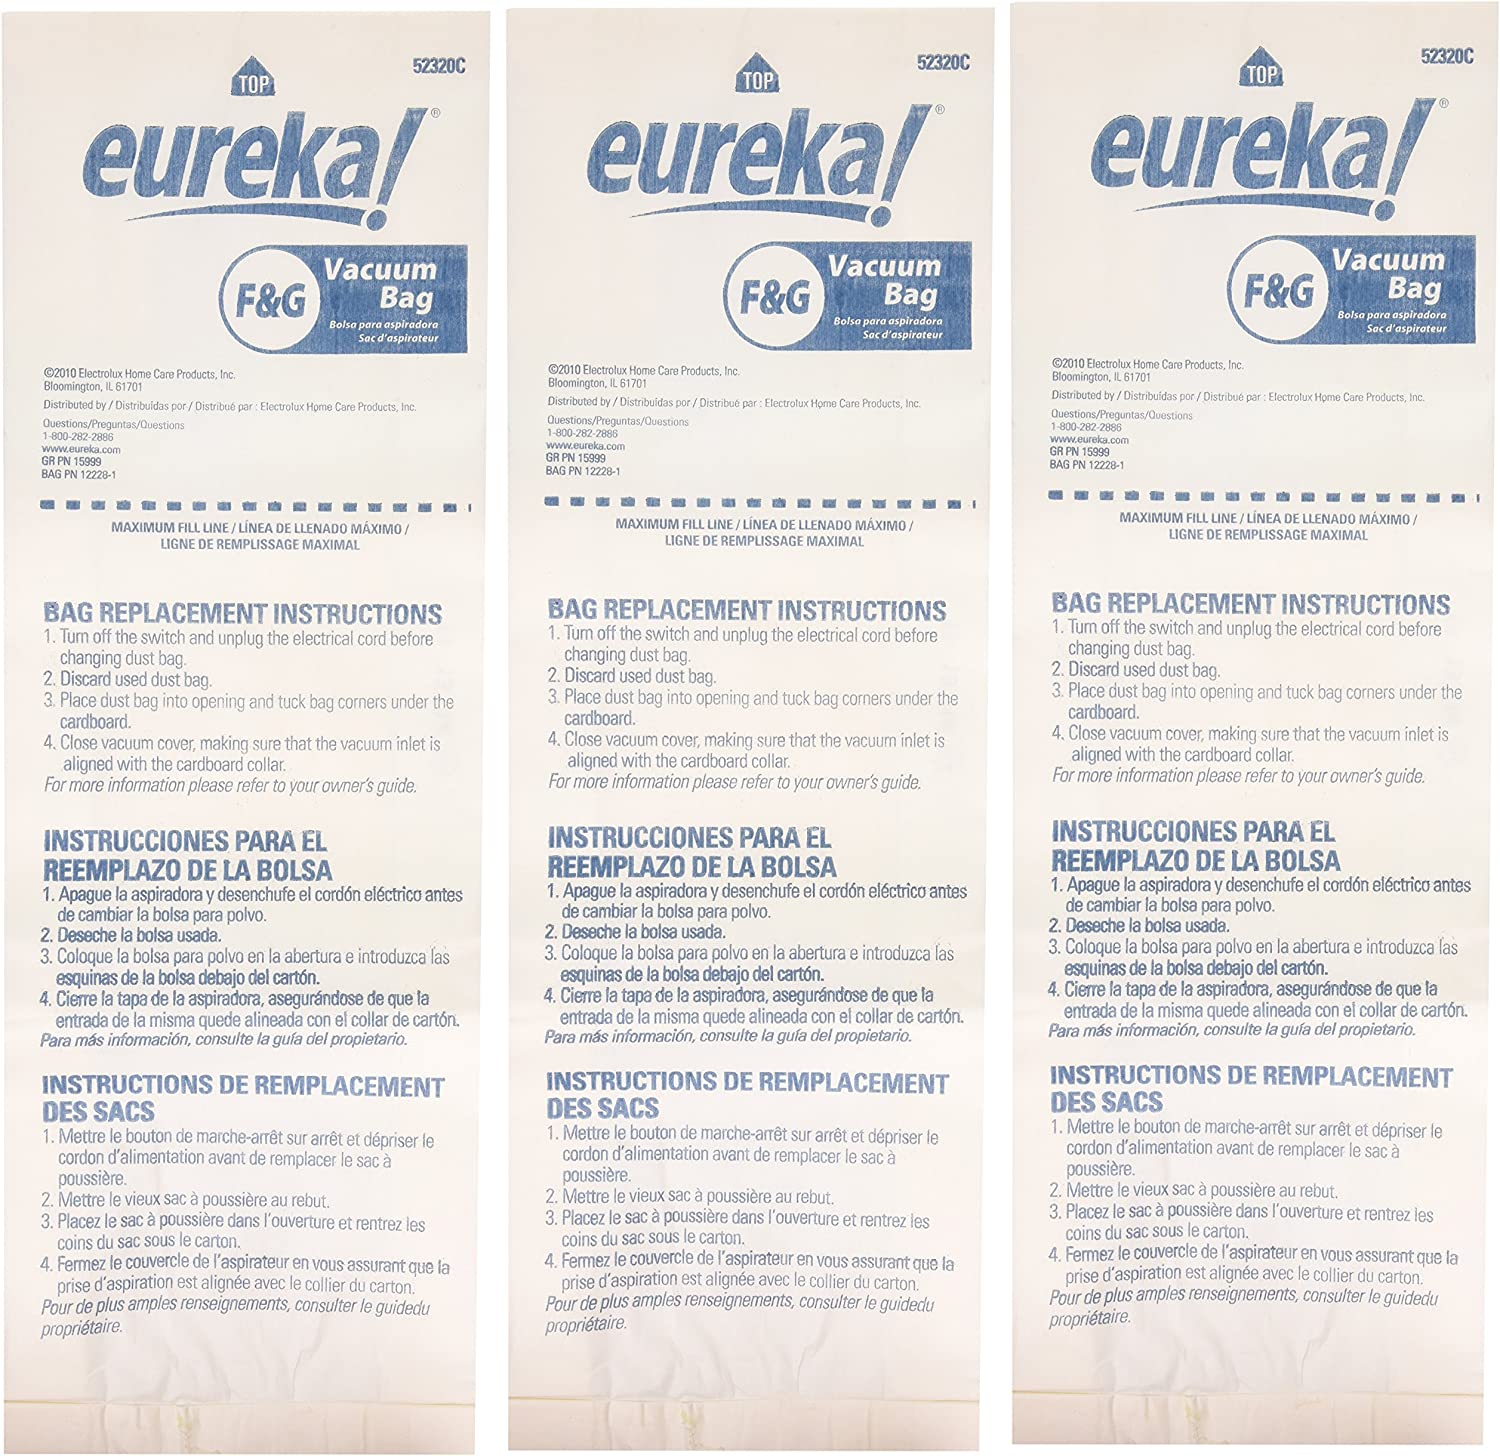 B00002N8CU Genuine Eureka F&G Disposable Dust Bag 52320C-6 - 3 pack 91-XBx5t6-L